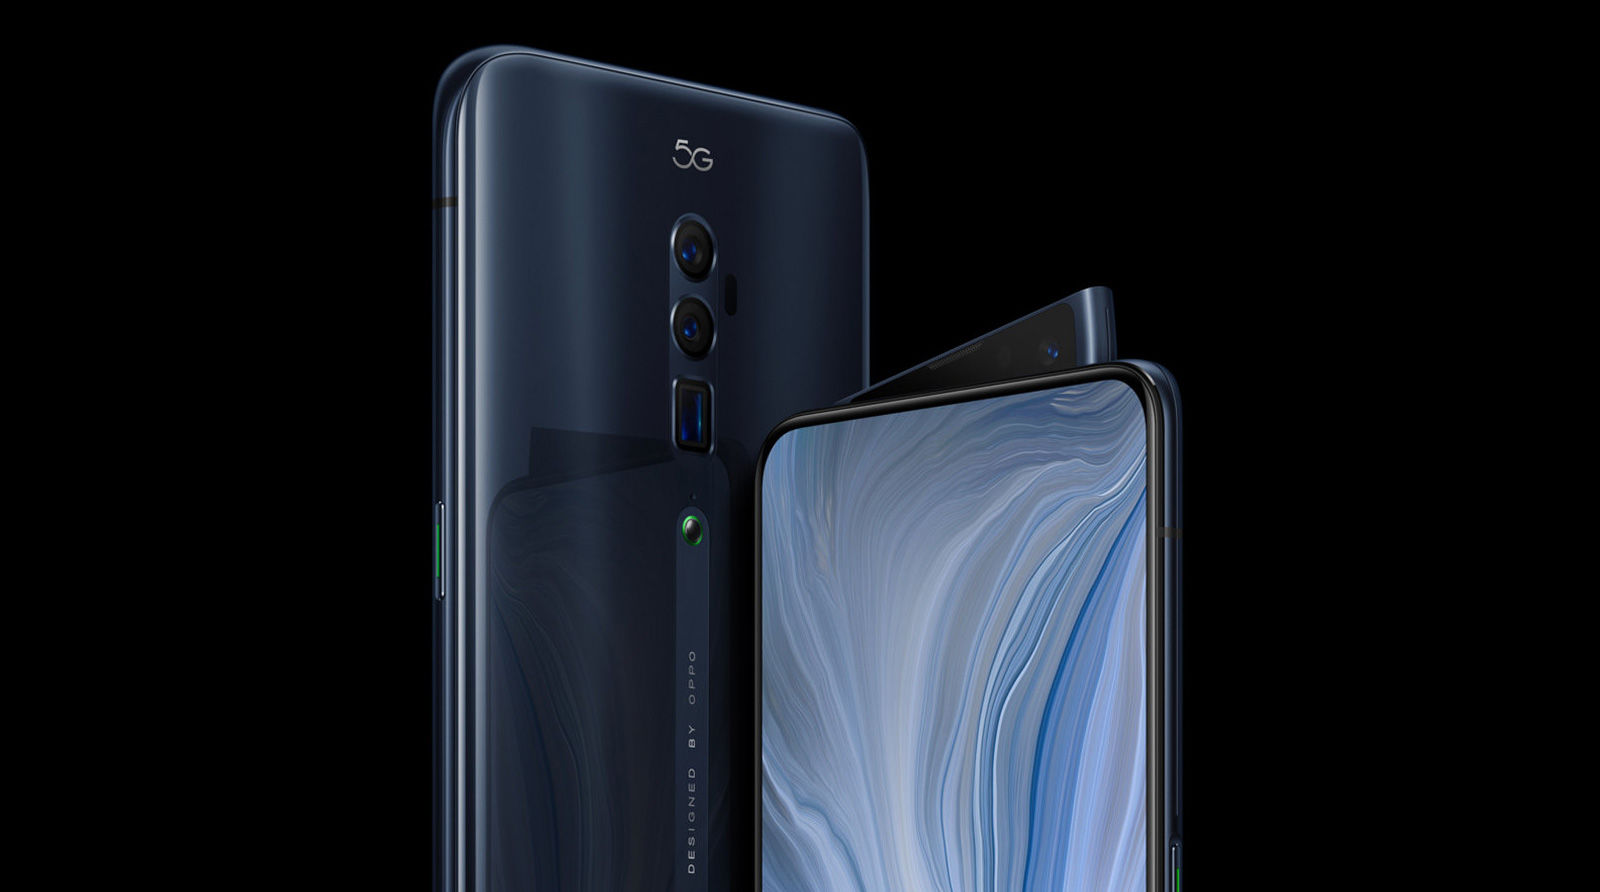 OPPO'S New Dual 5G Smartphone With Qualcomm Processor to be out soon: Details inside